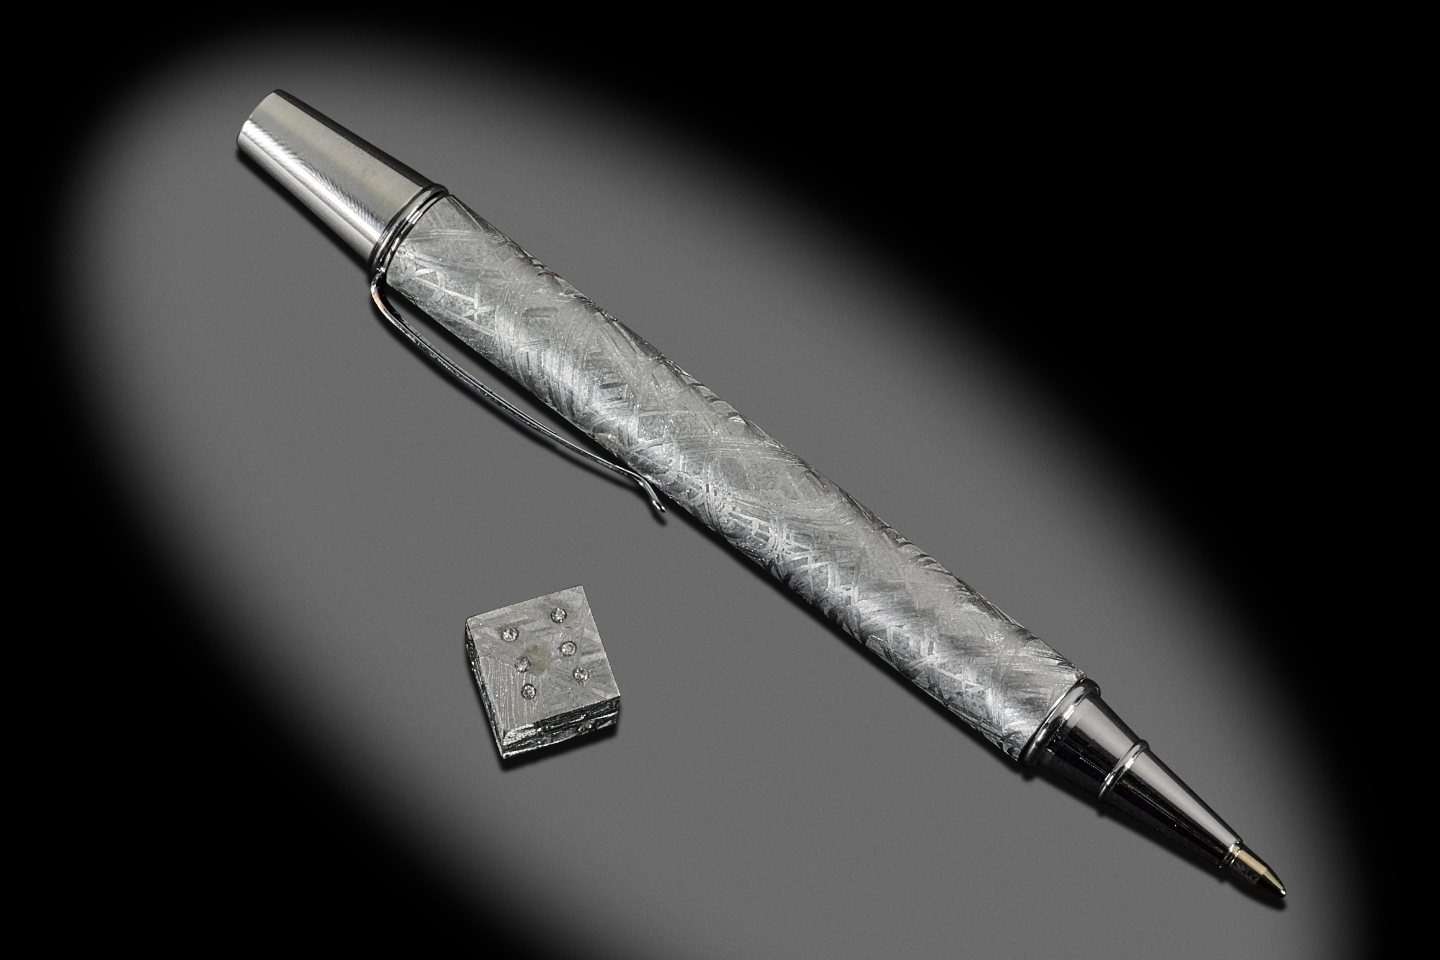 This one-off collectible pen was created from a single block of Muonionalusta meteorite.